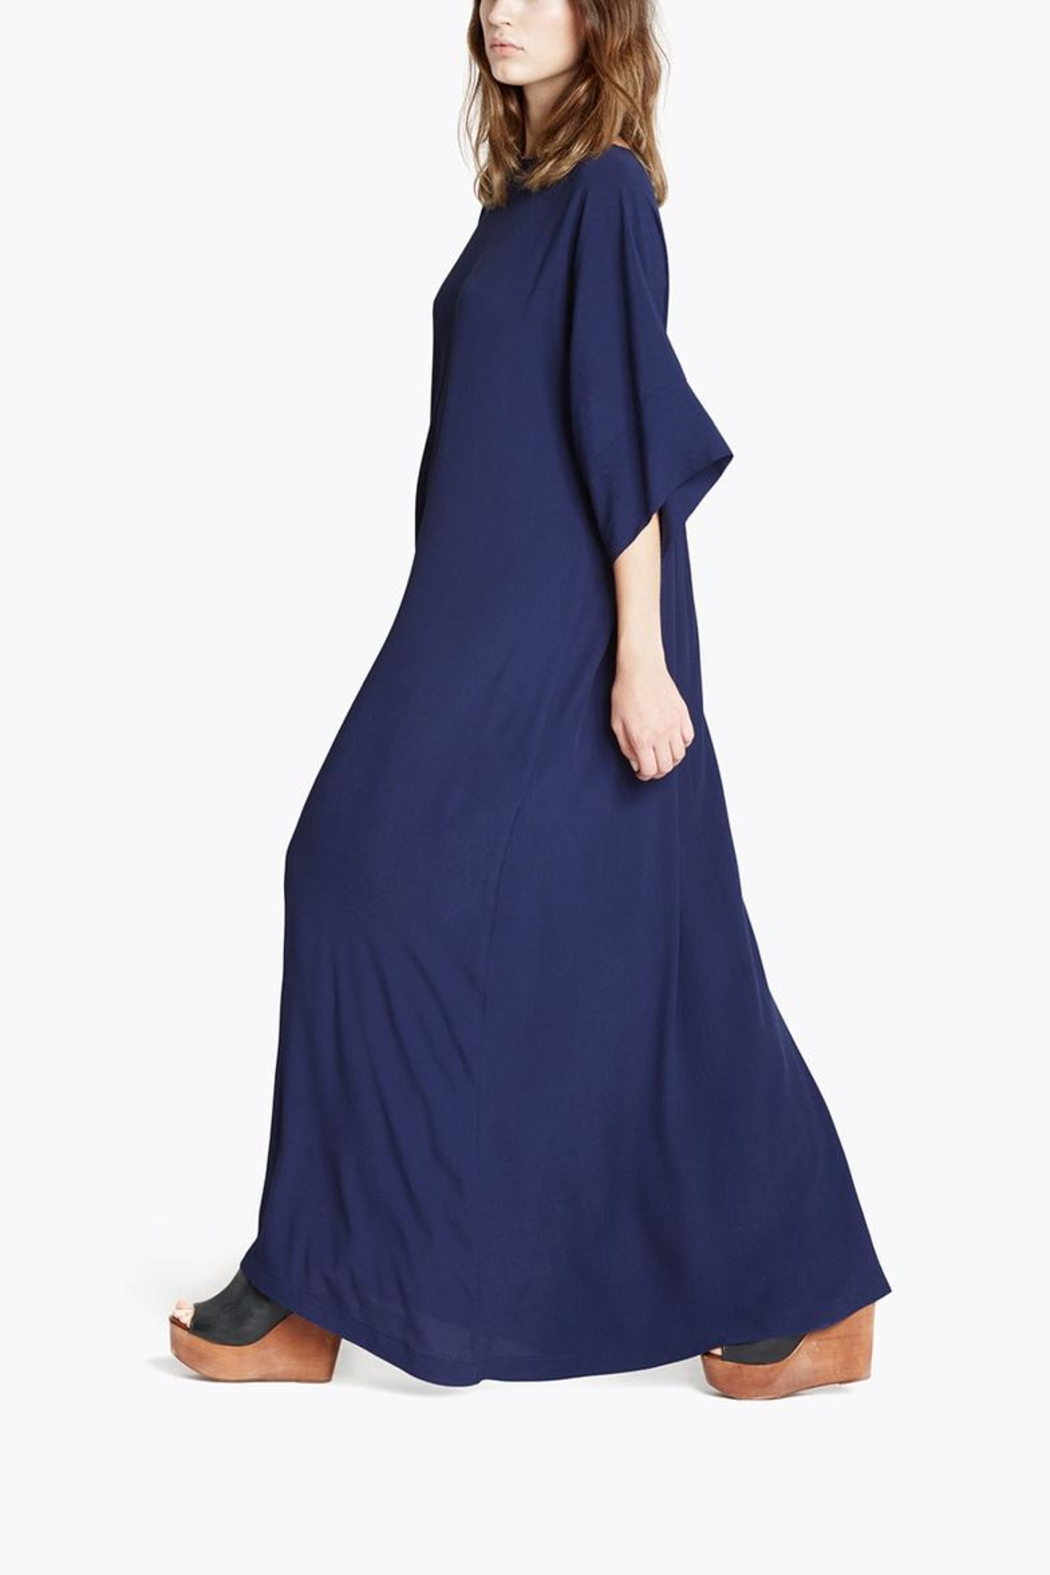 CYRILLE GASSILINE Blue Maxi Dress - Front Full Image